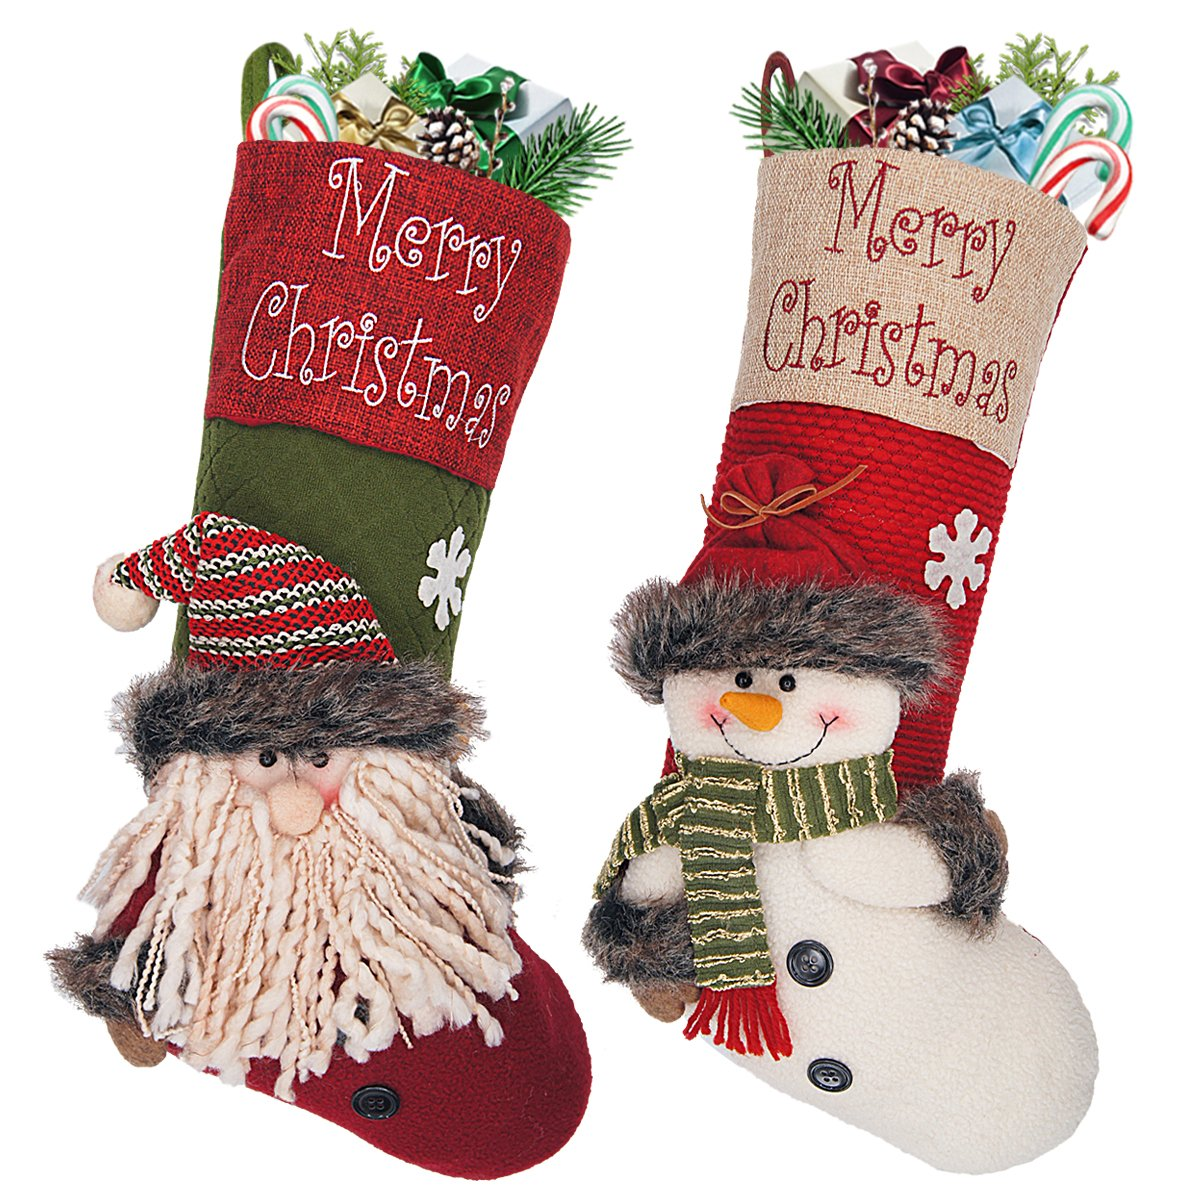 LimBridge 18'' Large 3D Burlap Christmas Stockings for Kids, 2-Pack, Cute Santa & Snowman